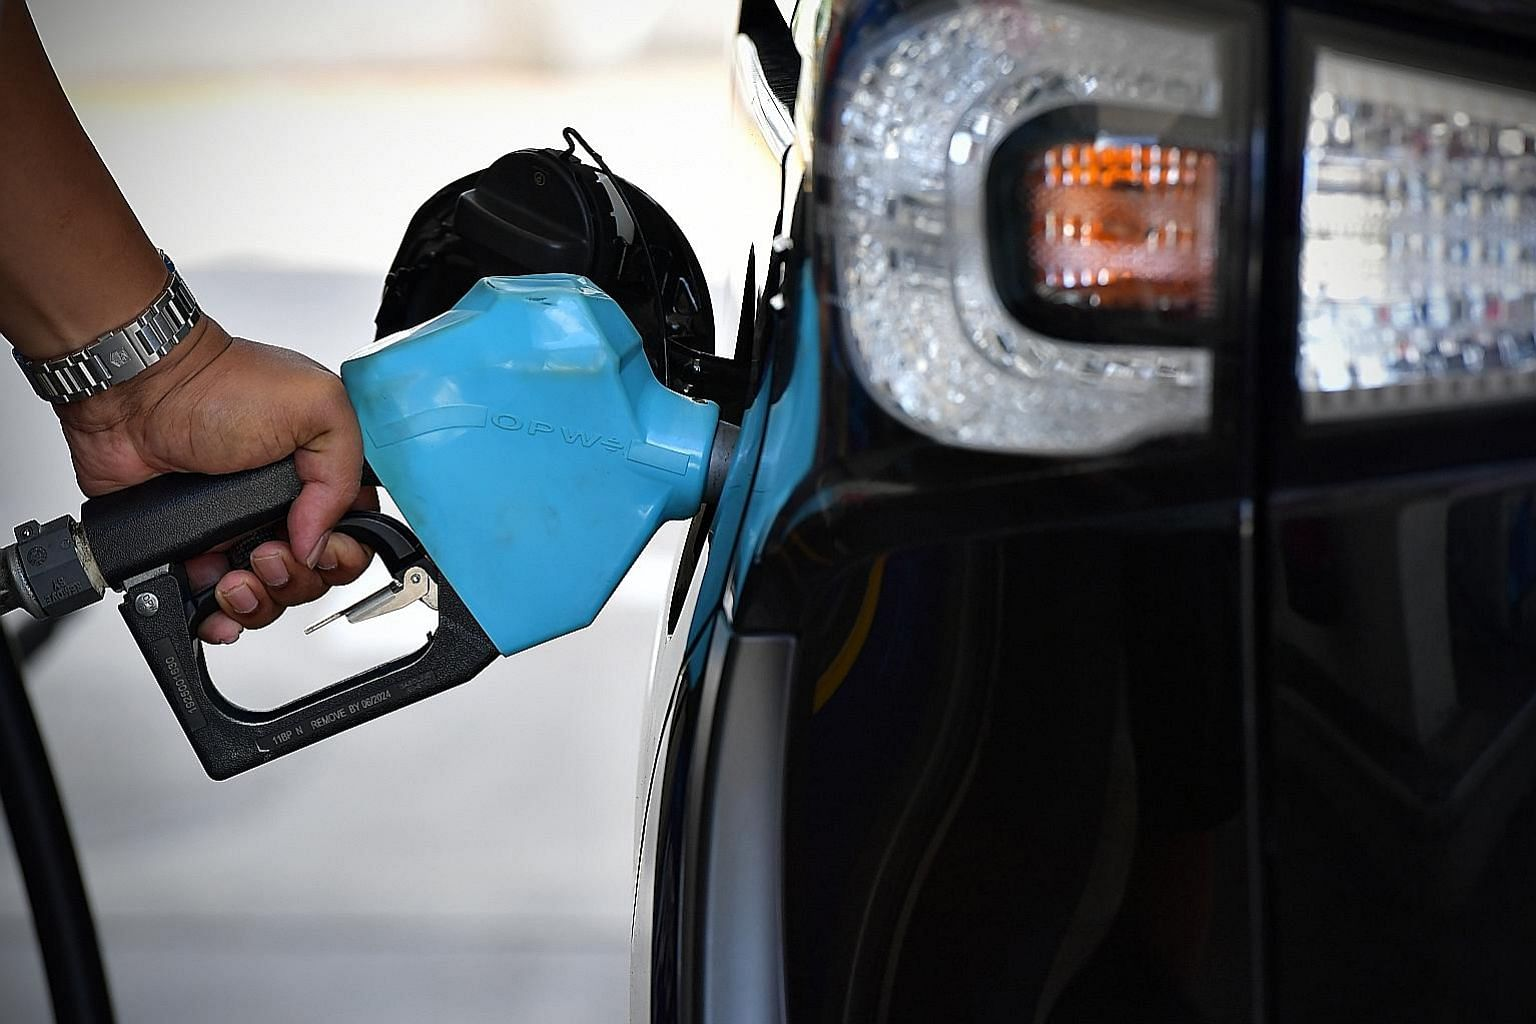 Demand for other types of oil and excess supply affect what drivers eventually pay for petrol at the pump. Other factors include petrol companies' operating costs, land costs, duties and taxes, discounts and rebates.